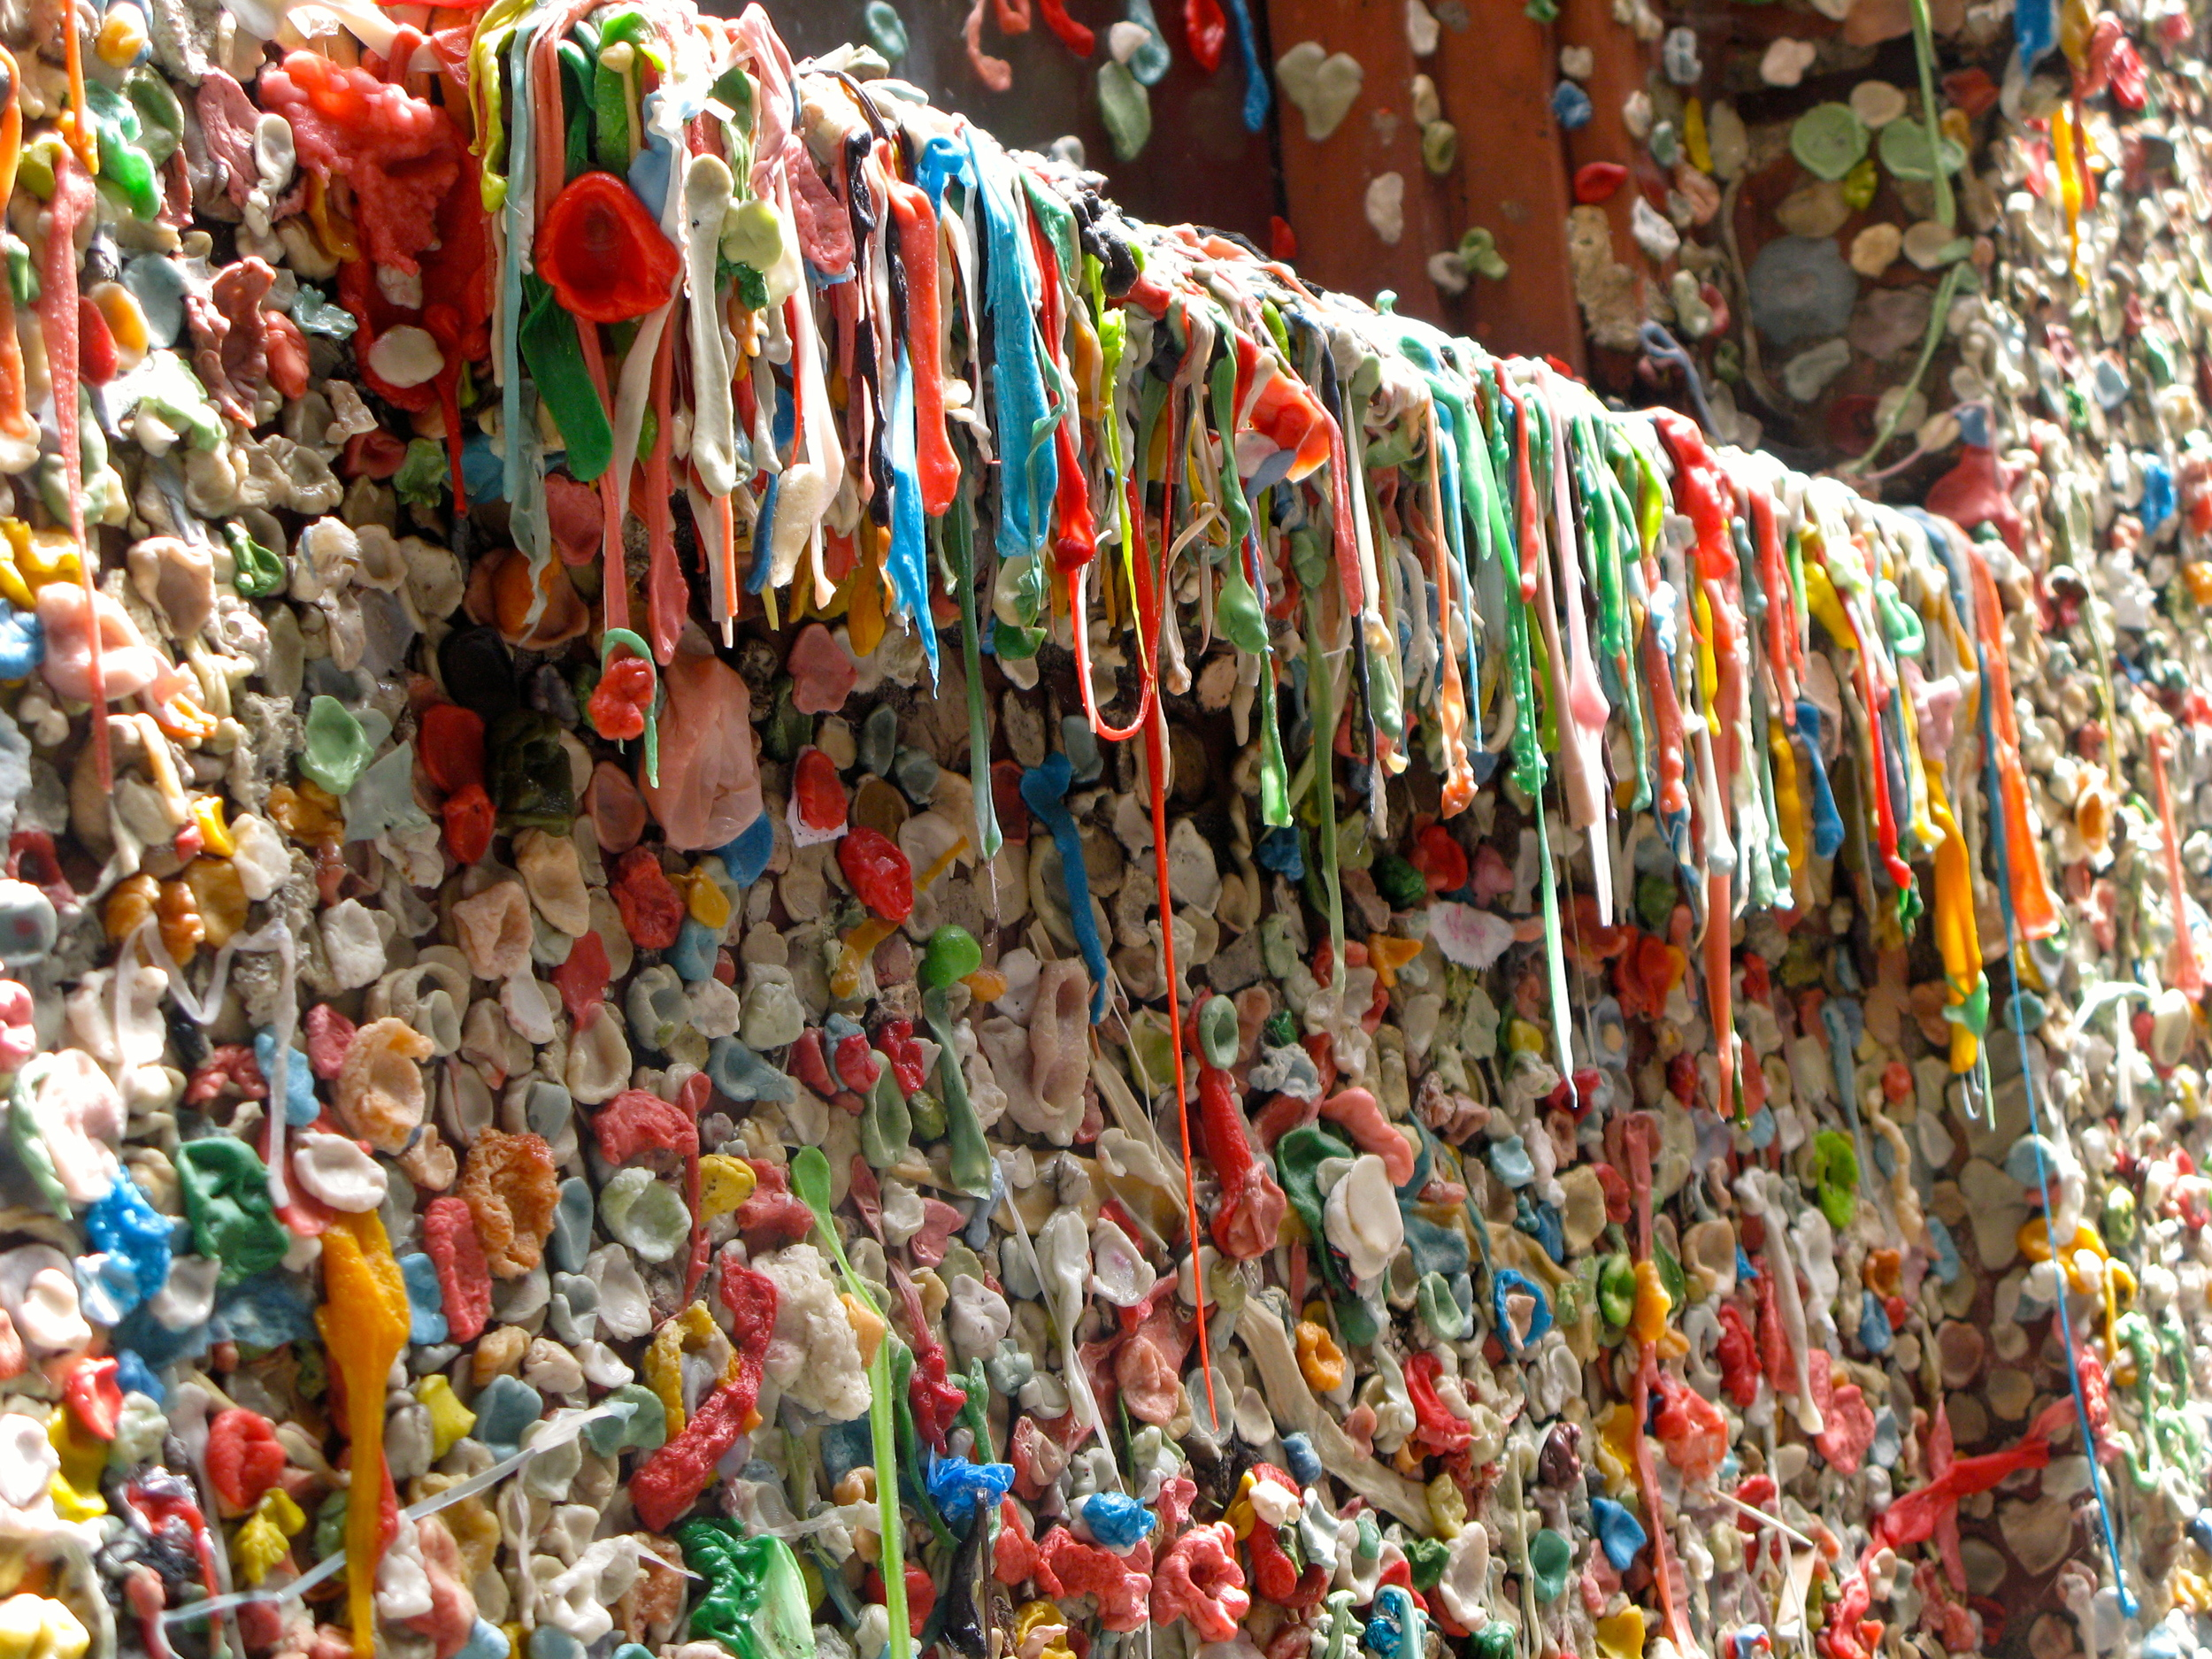 Gum wall in downtown Seattle.  Photo by Rebecca Garland.